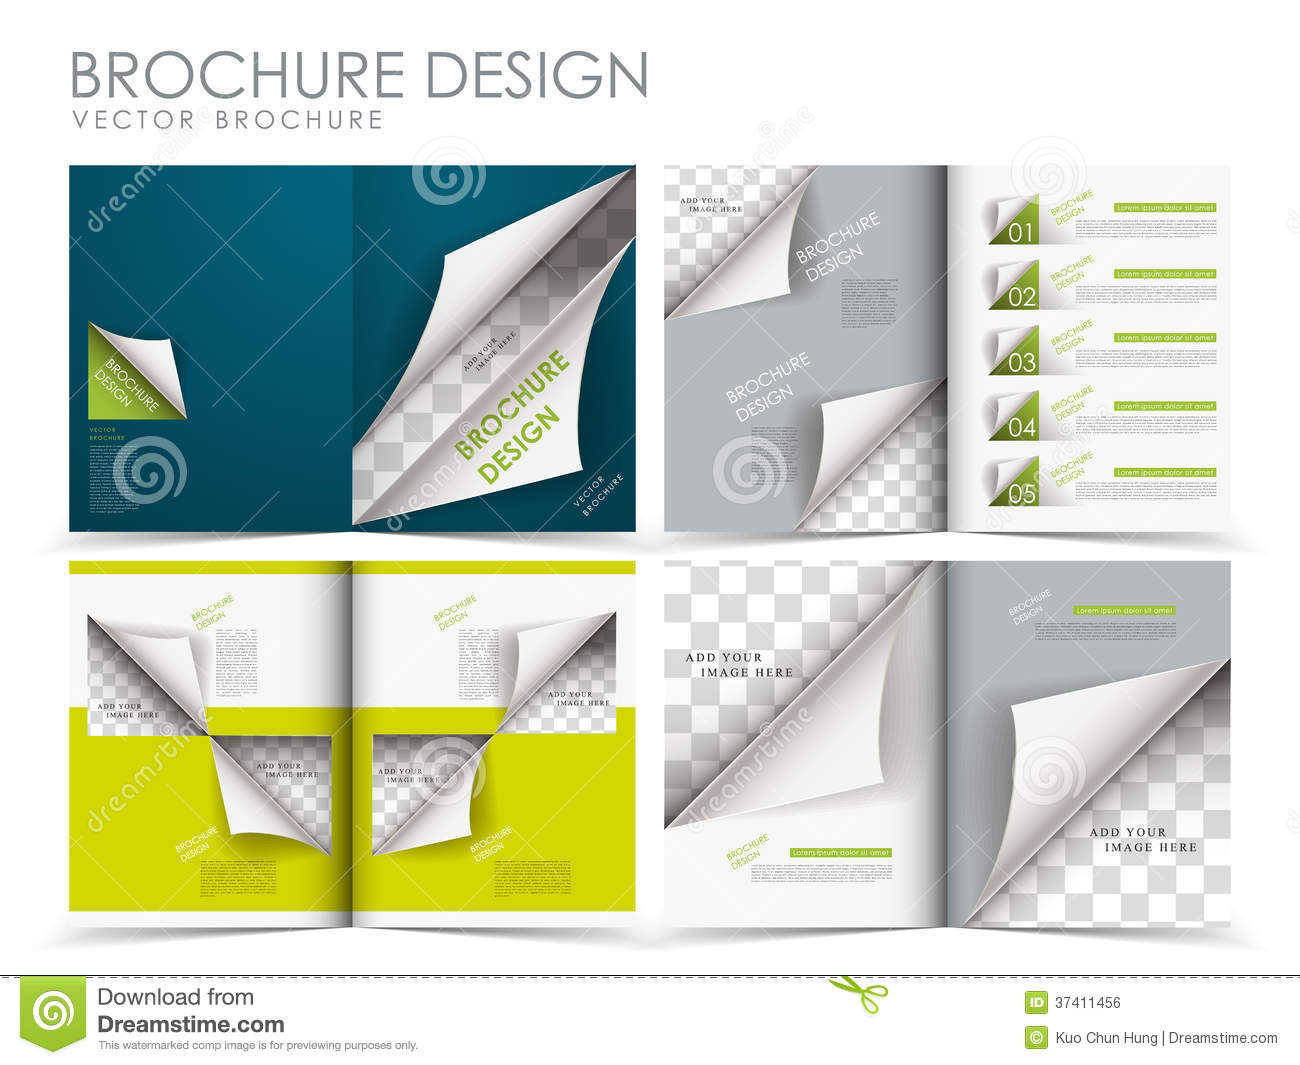 Download coreldraw brochure templates bladlif for Coreldraw brochure templates